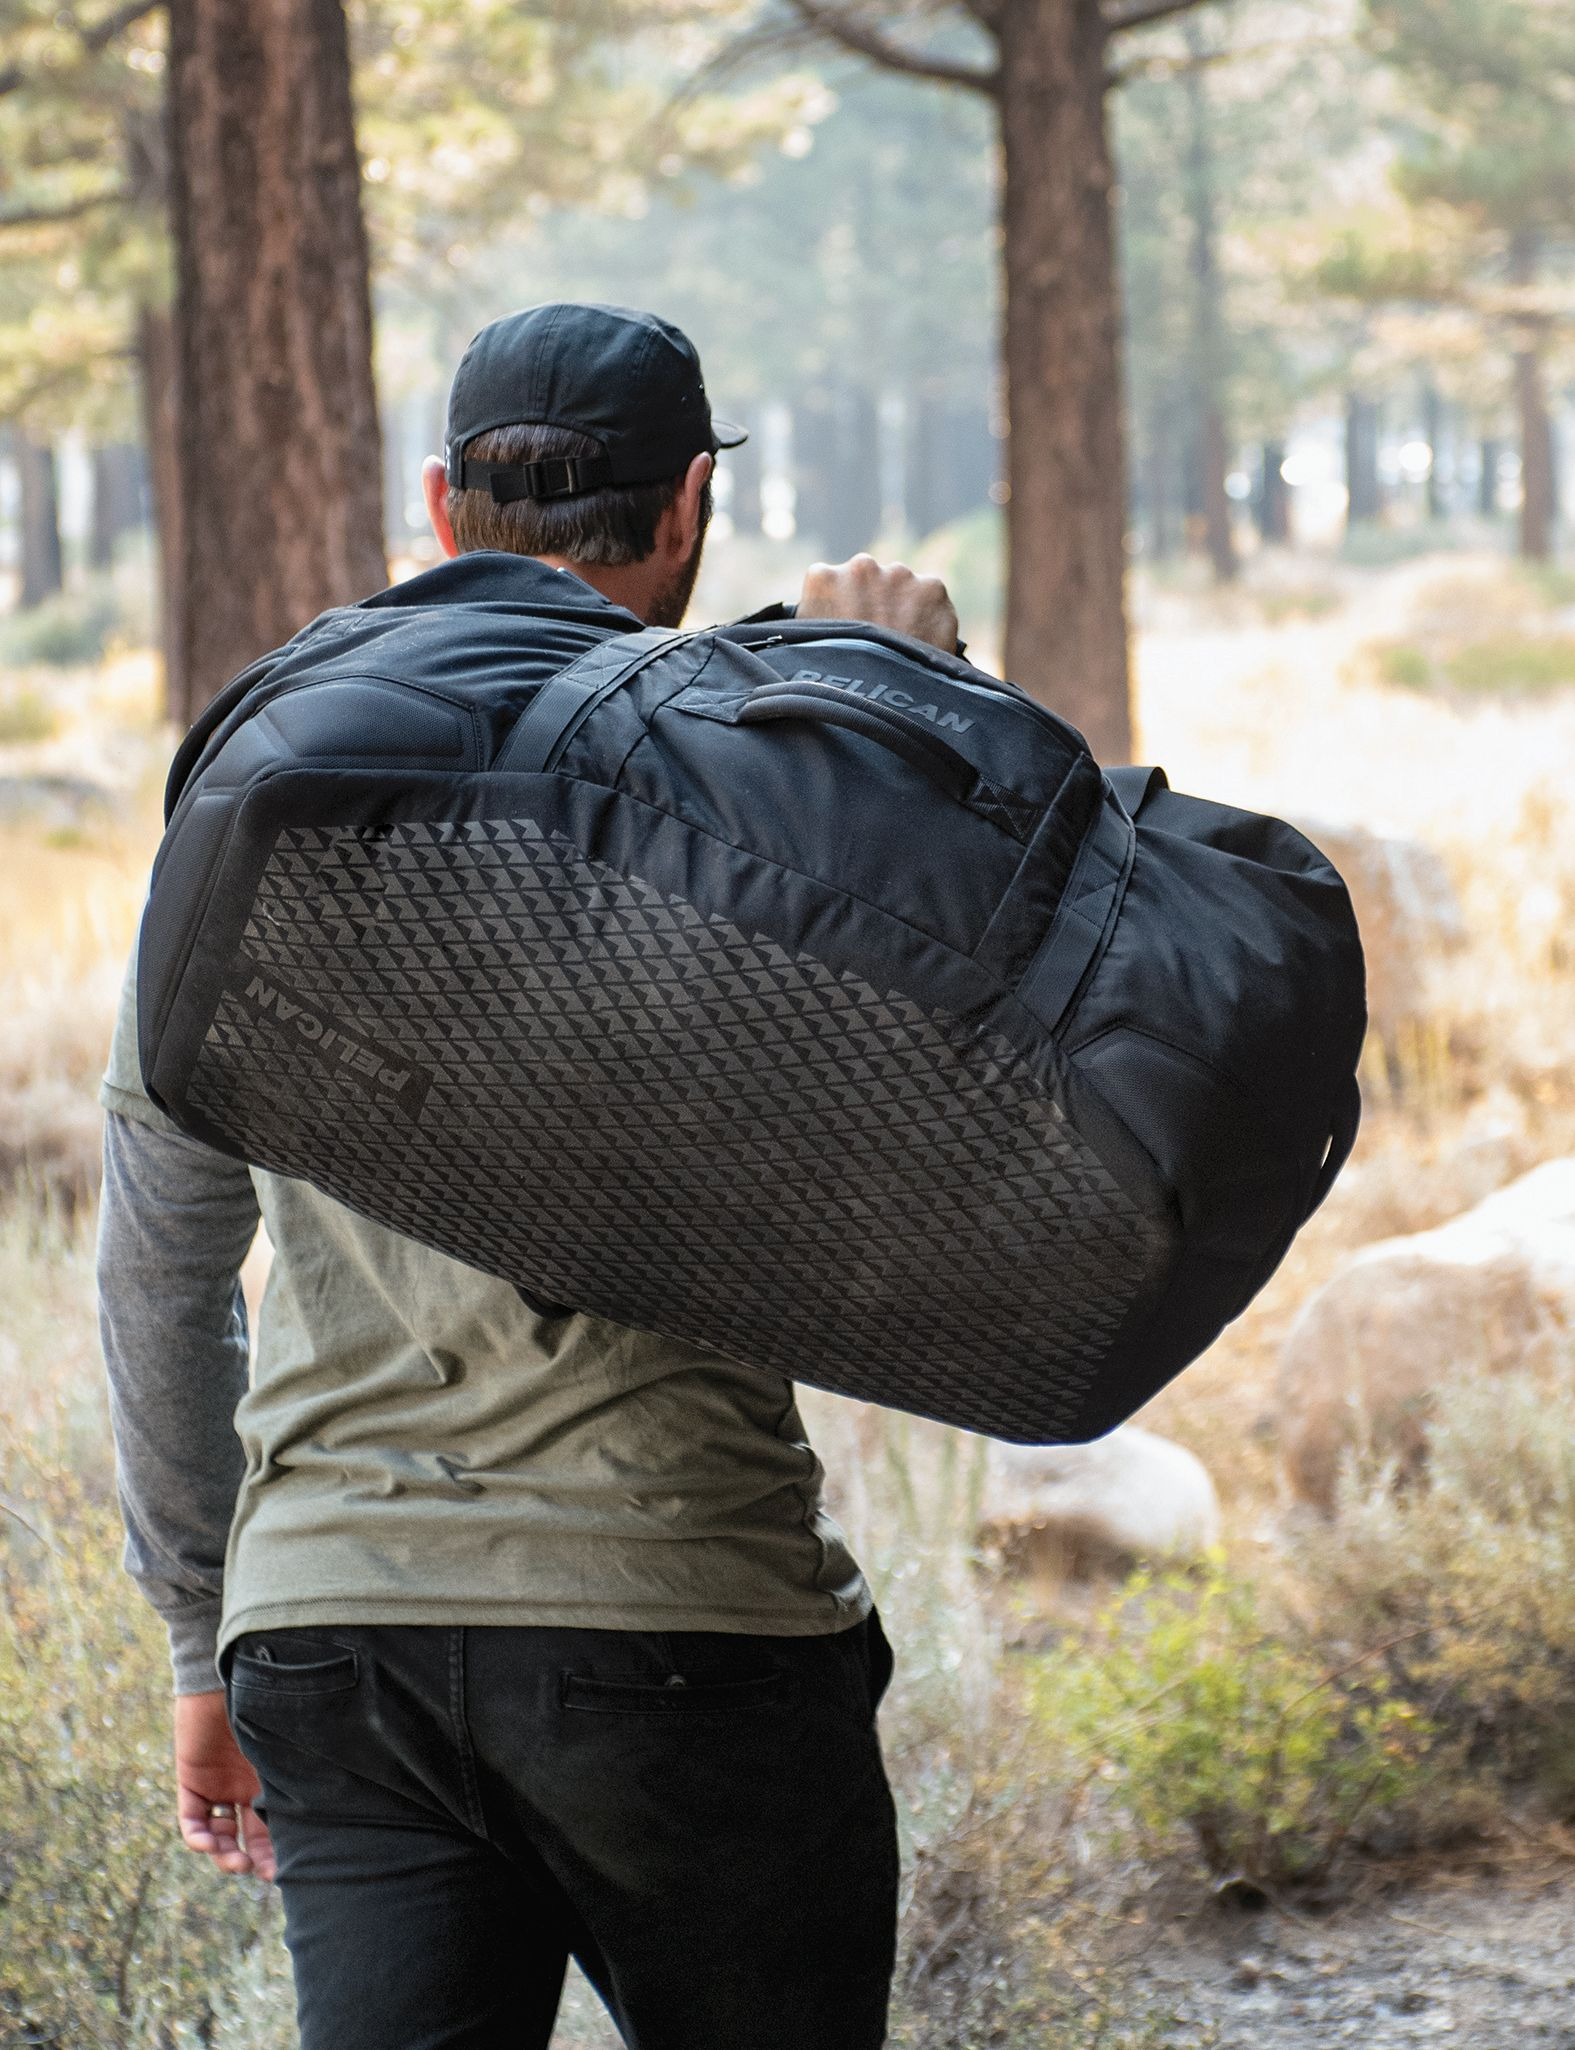 93b19c6a1c8e Pelican Launches Premium Line of High-Performance Backpacks and Duffel Bags